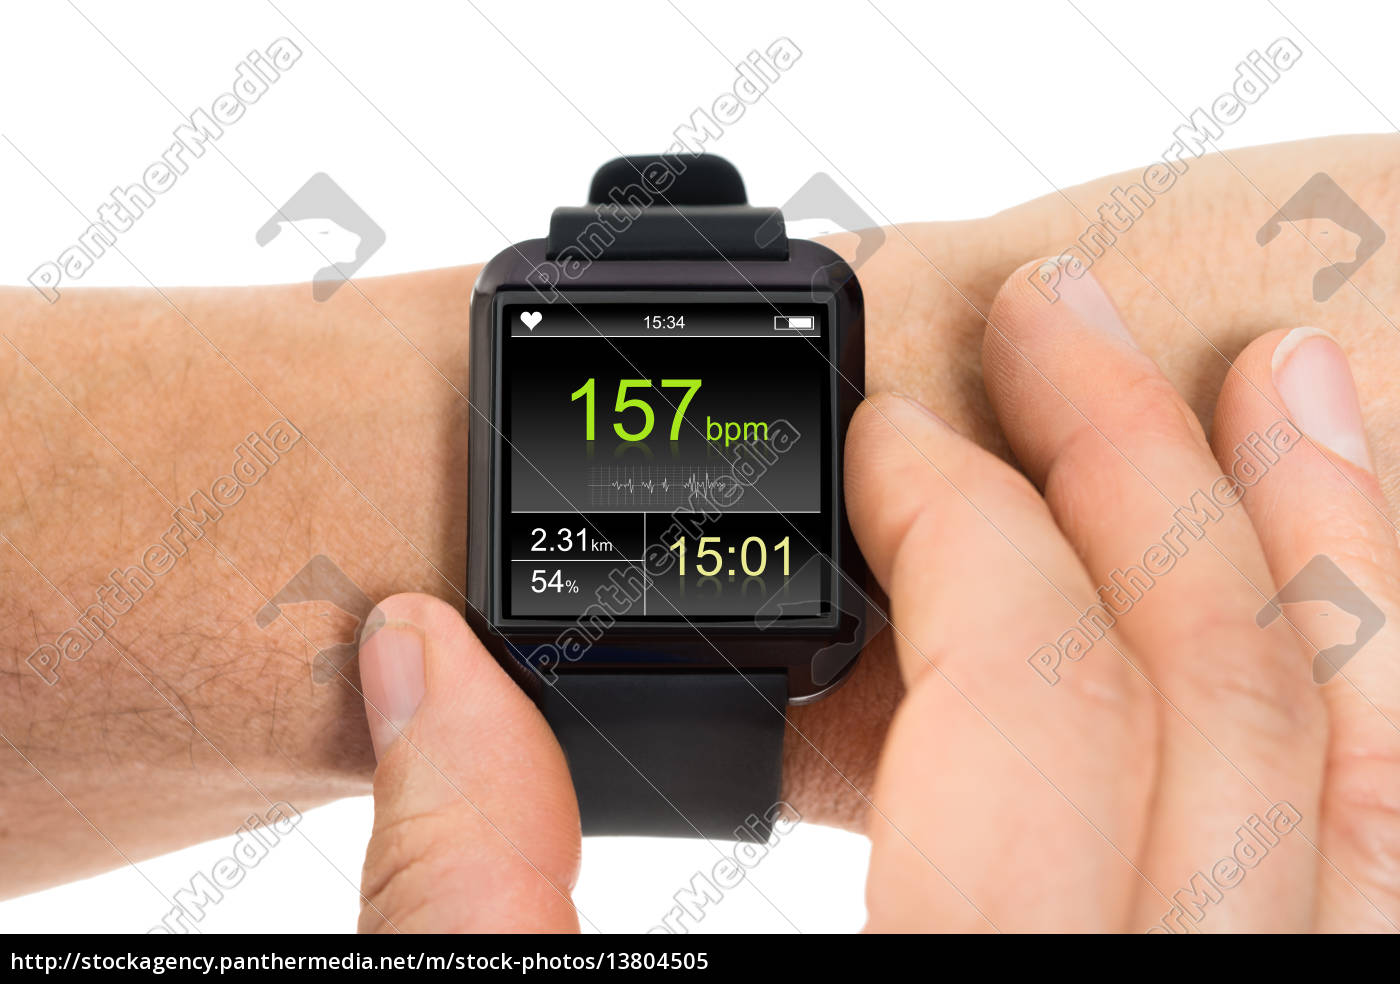 human, hand, with, smartwatch, showing, heartbeat - 13804505